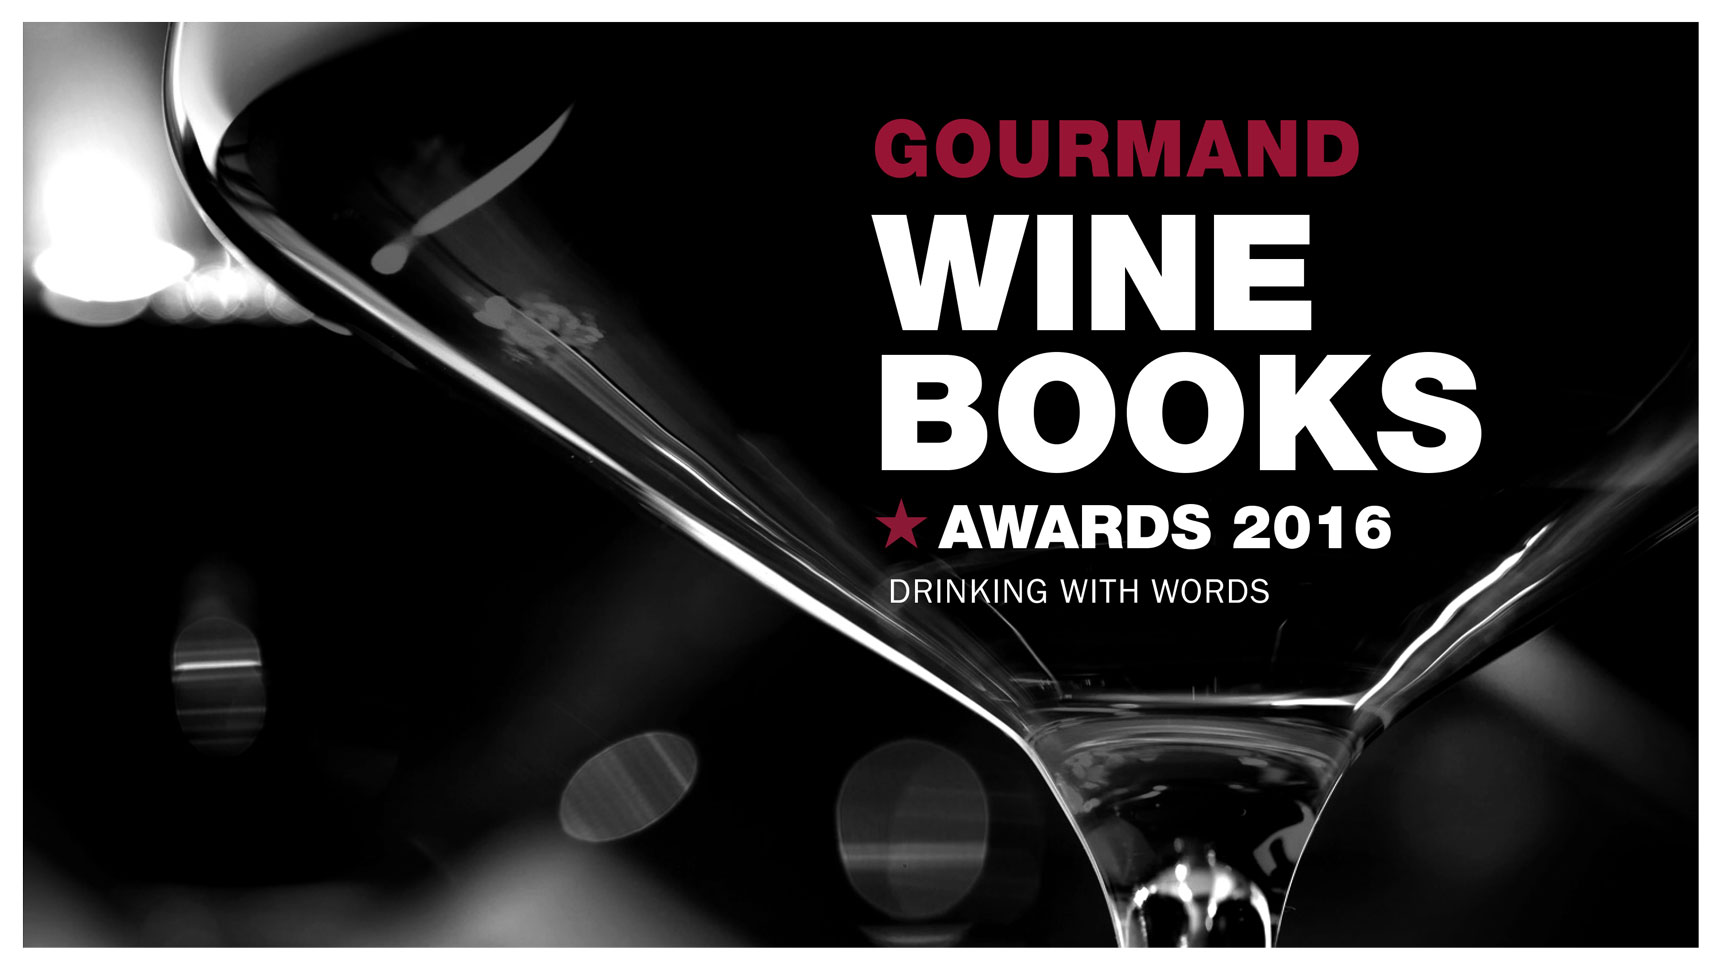 gourmand winebook awards winners 2016 zoom 120